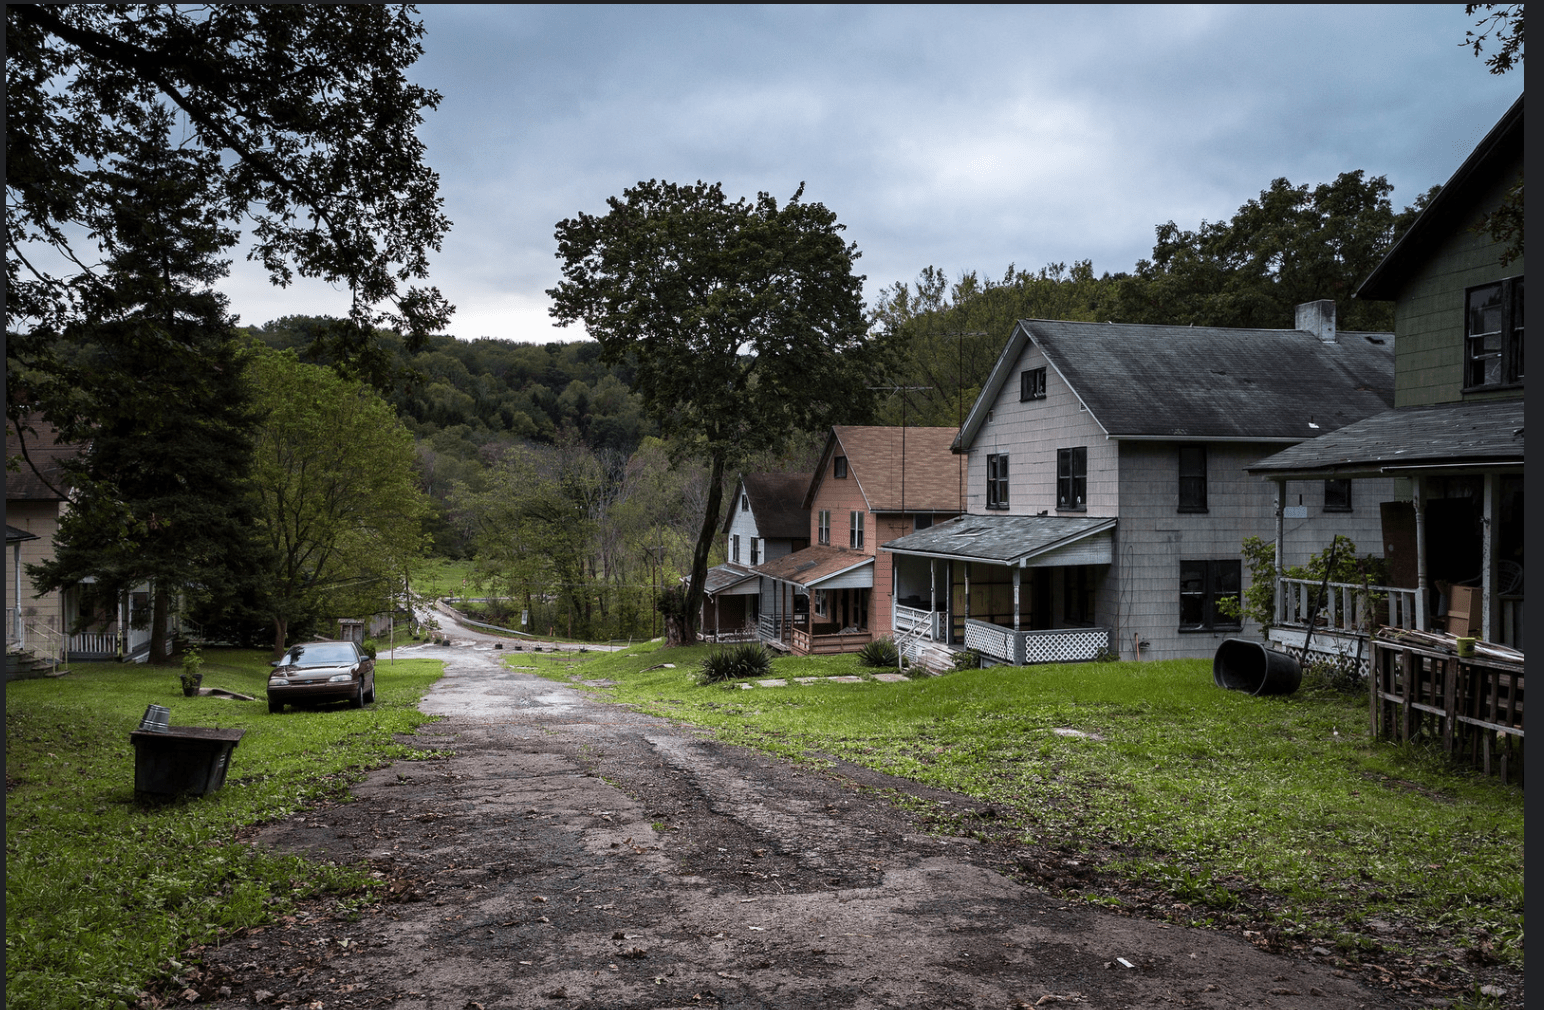 Nearly Everyone Has Forgotten About This Tiny Ghost Town